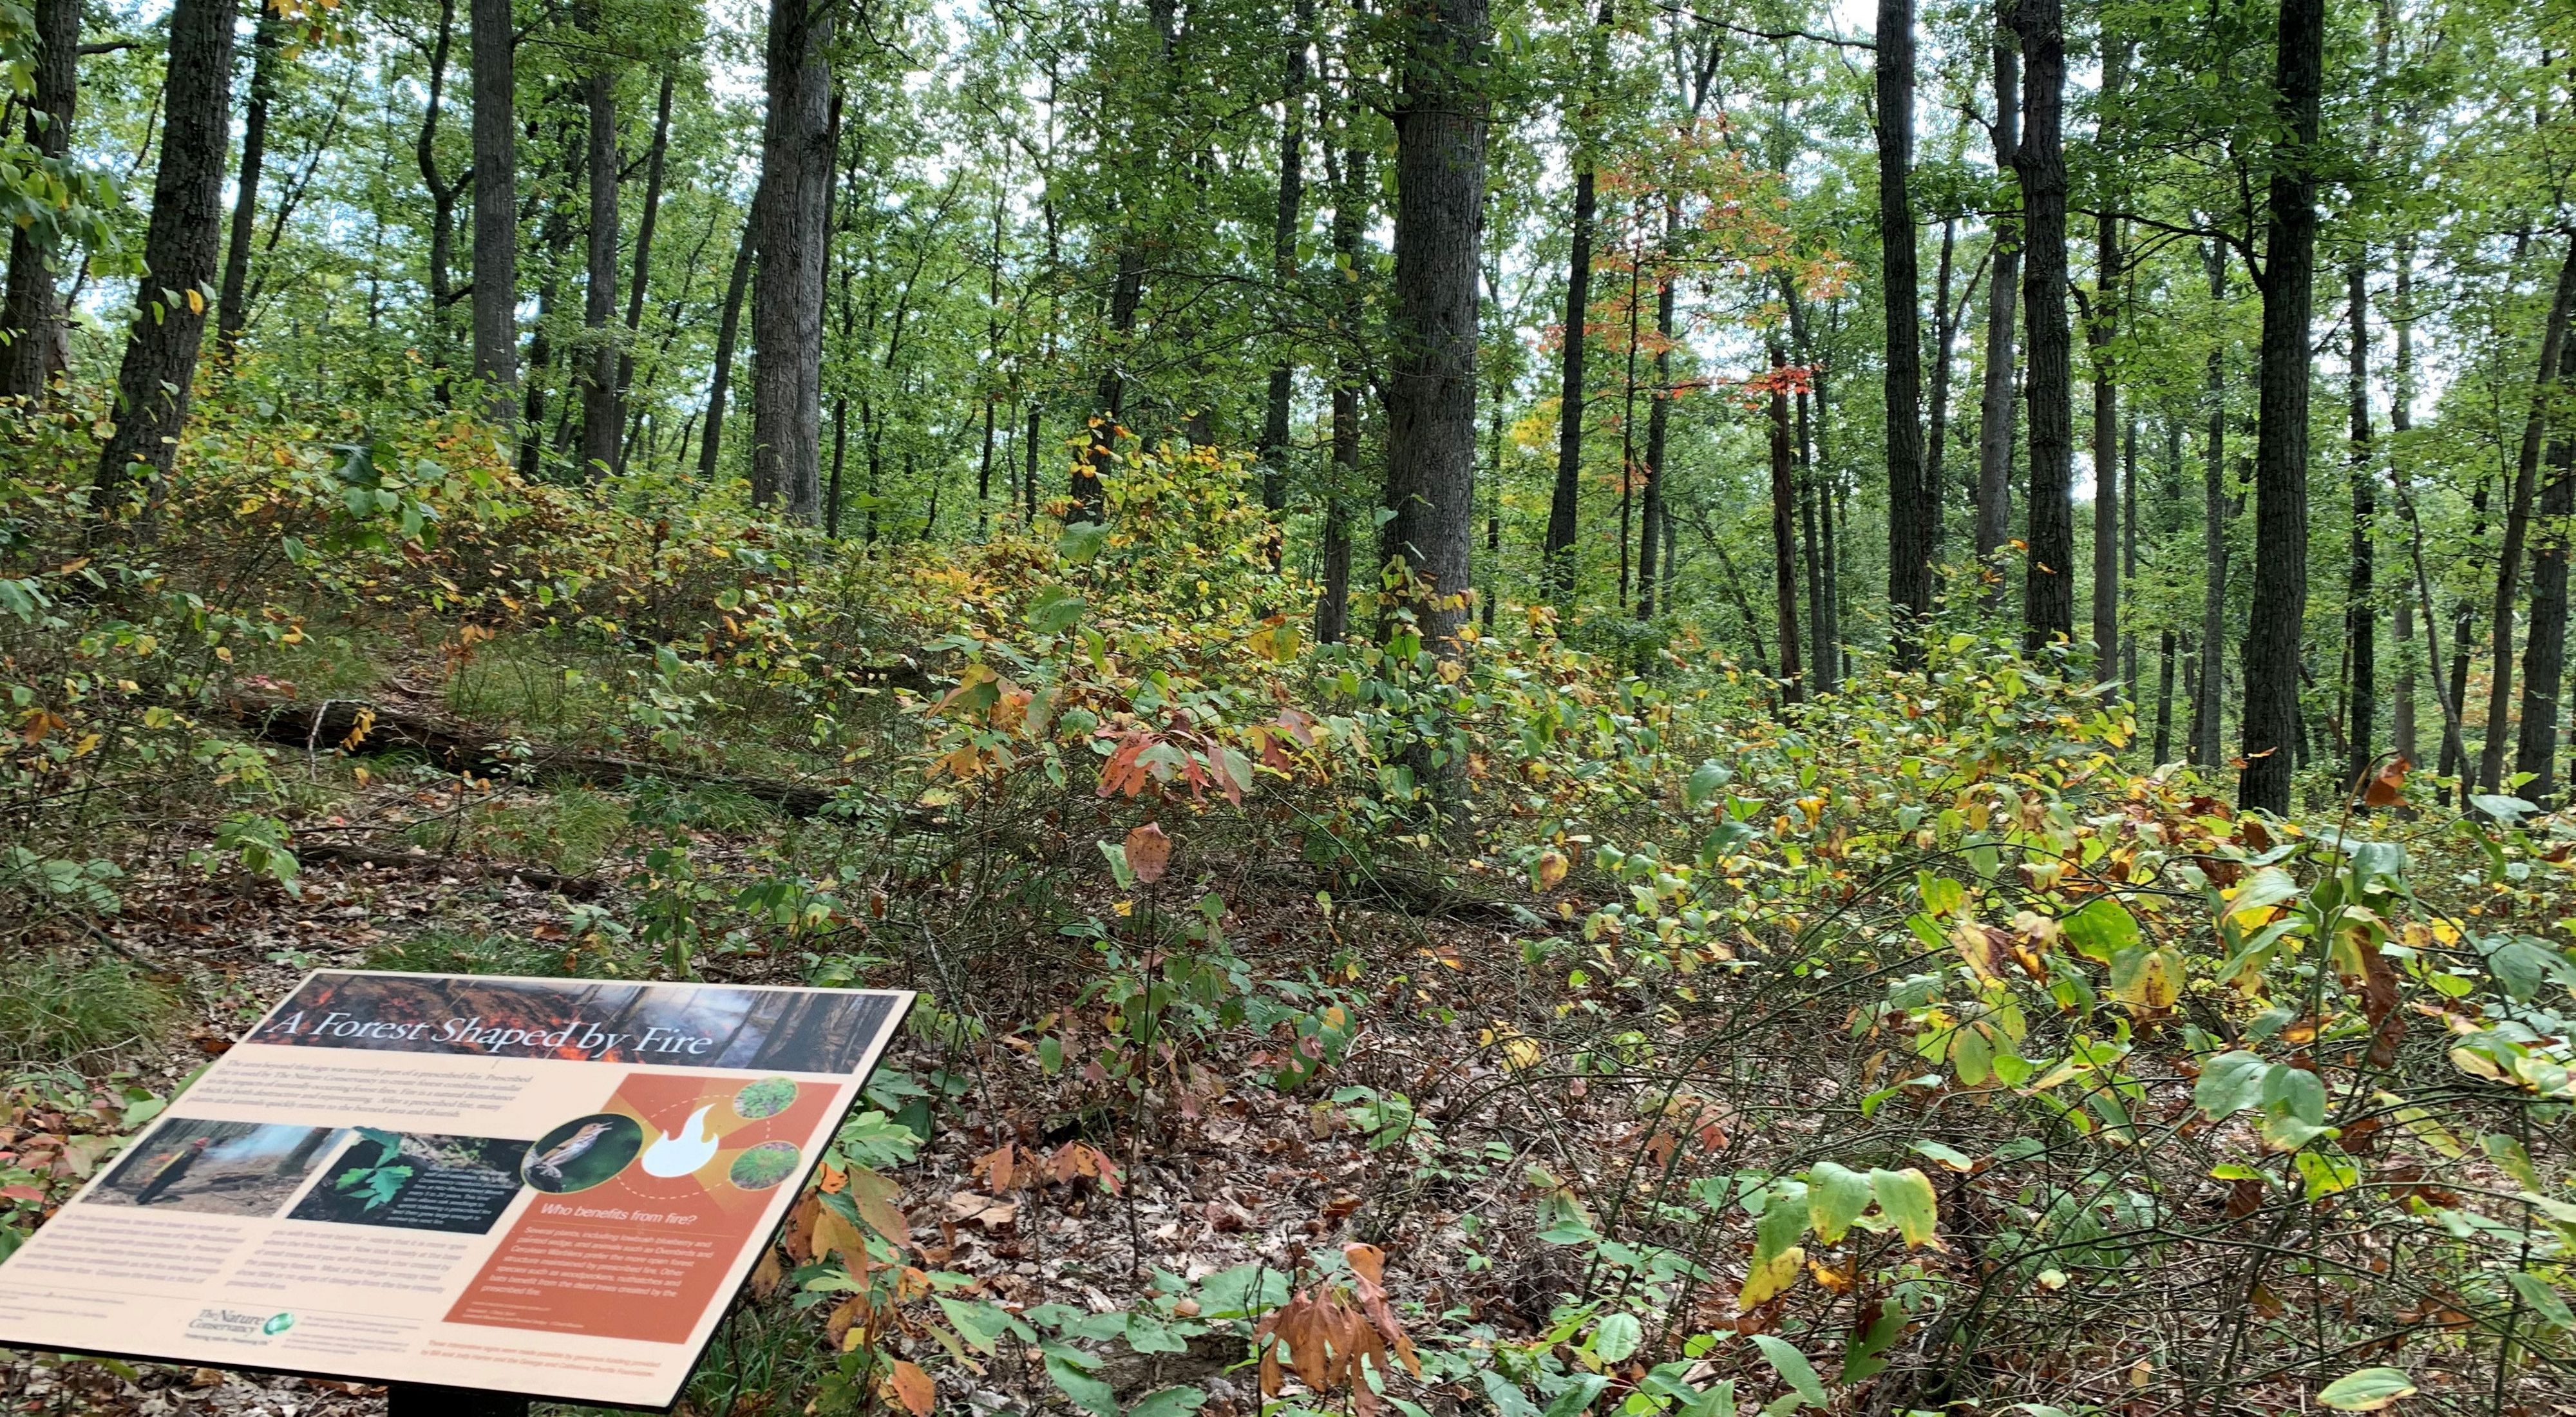 Interpretive sign in forest in early autumn.